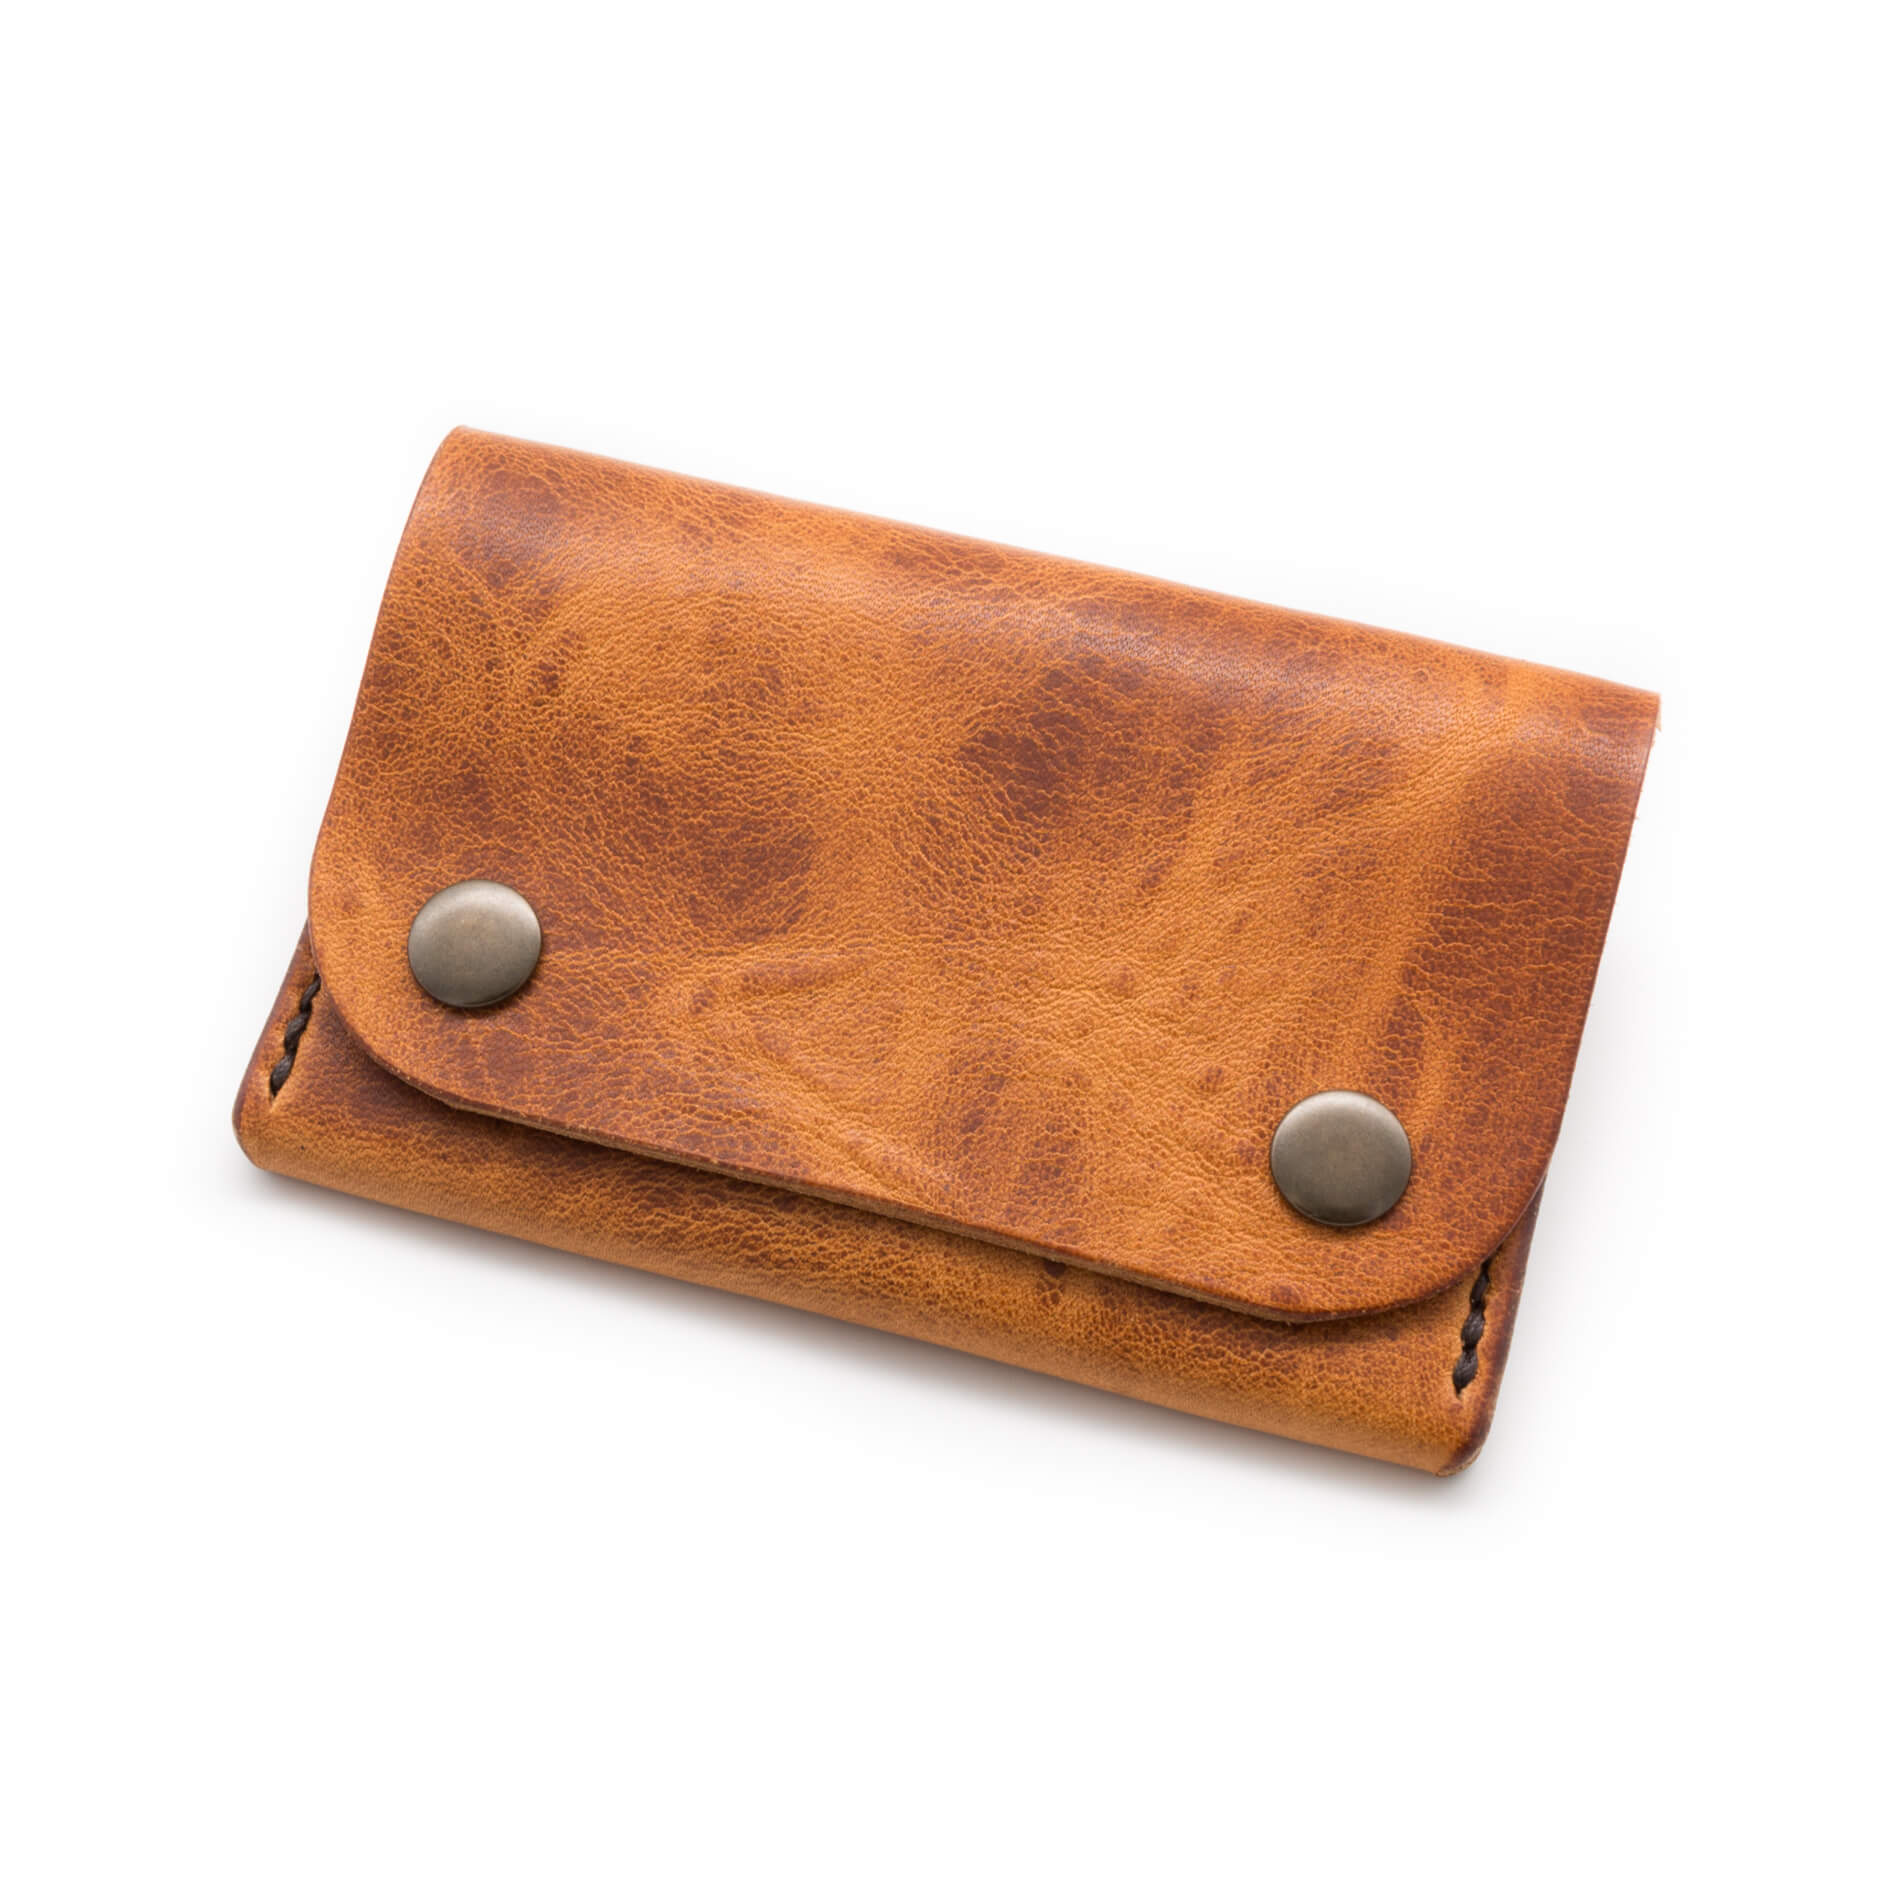 The Delta leather wallet in Horween English Tan leather